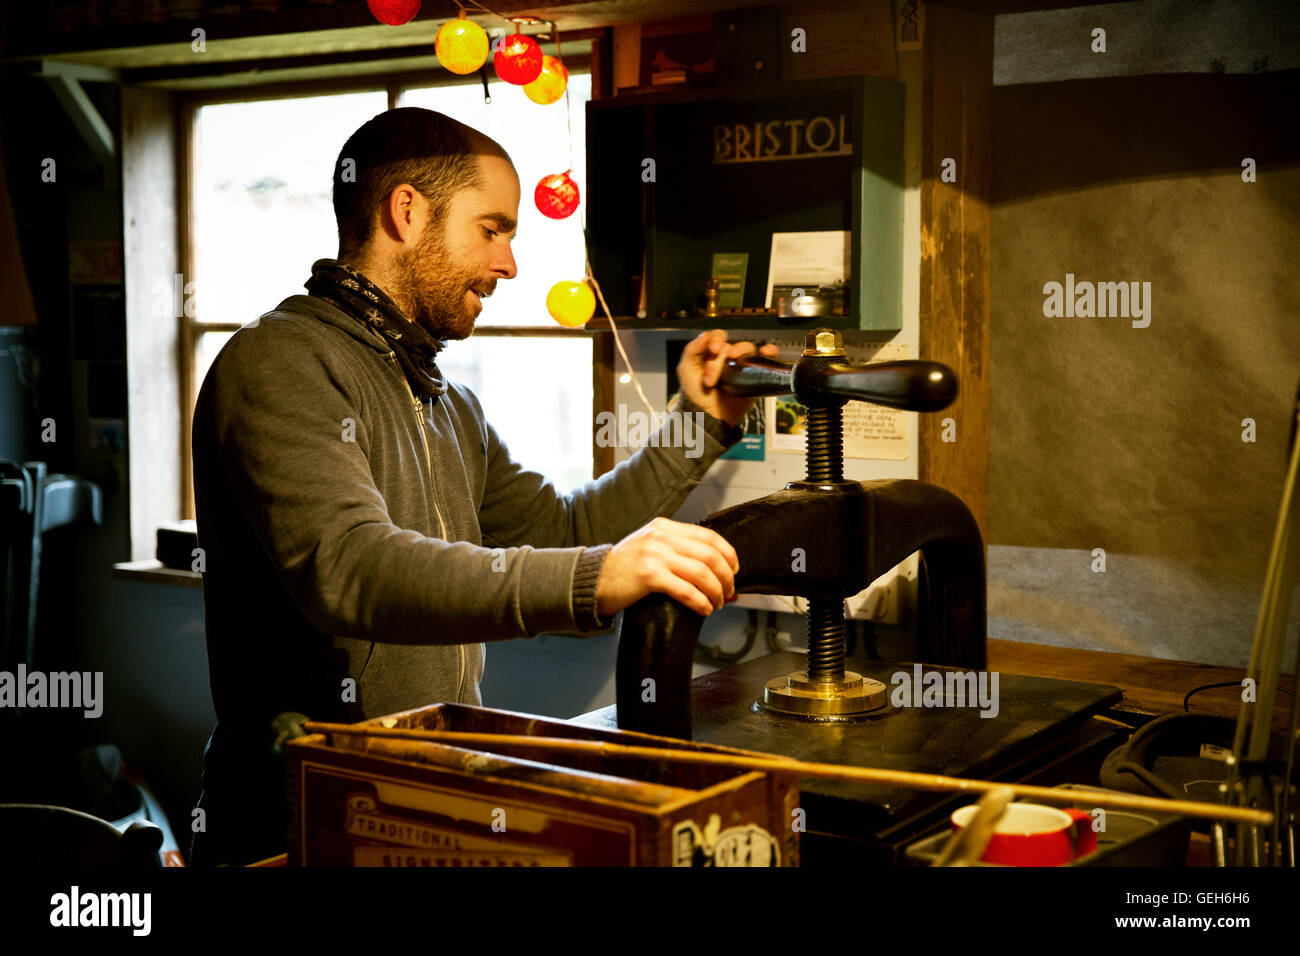 A man using a printing press to create linocut printed signs. - Stock Image